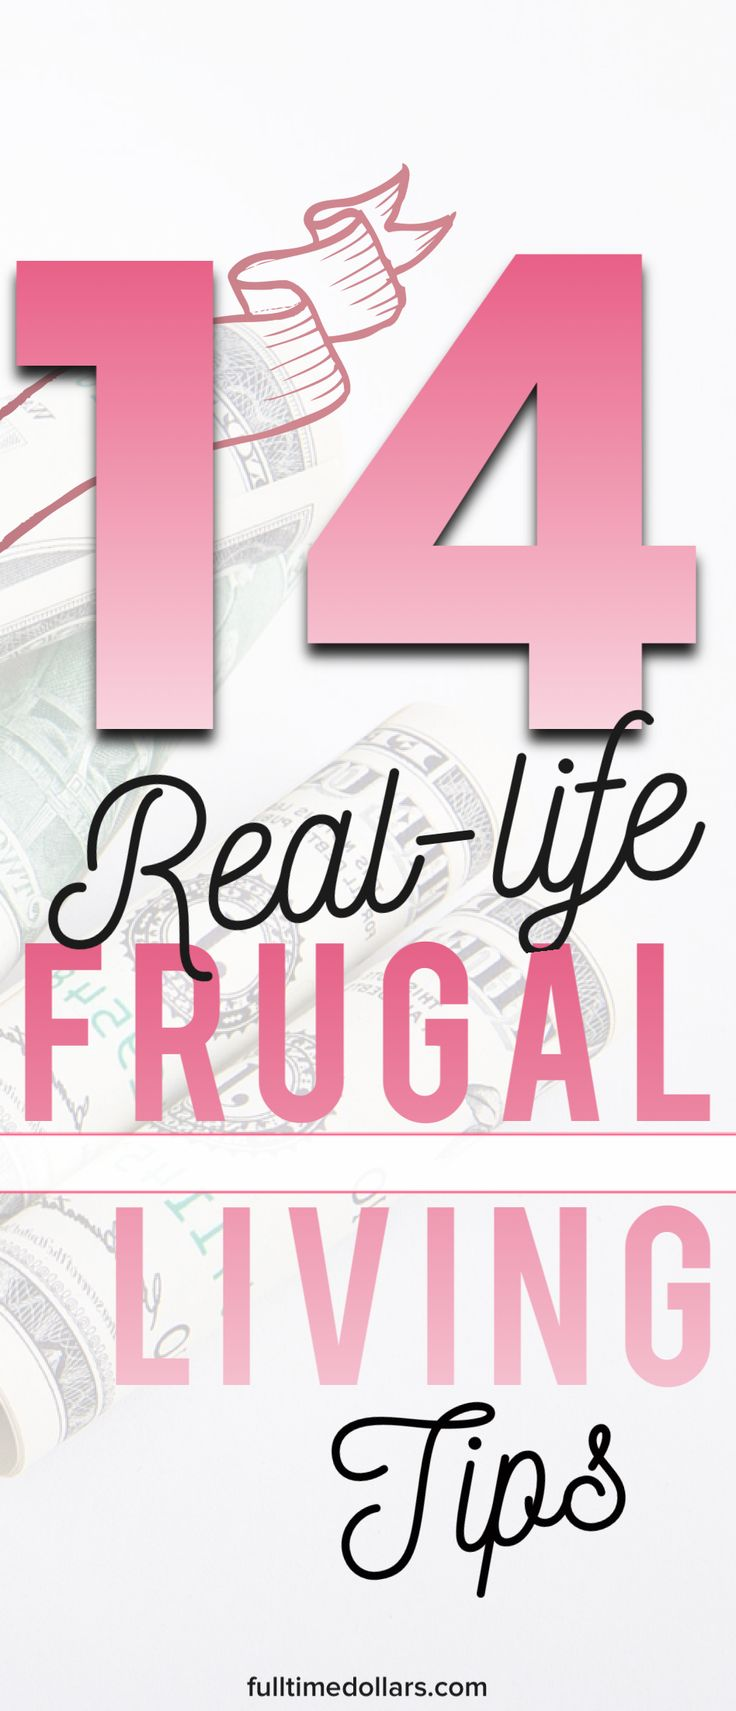 How would you implement frugal living to save more money? Is it the old car? Coffee at home? Learn more about my frugal measures that you can use too! Article via @fulltimedollars #frugalliving #frugallivingtips #howtosavemoney #savingmoneytips